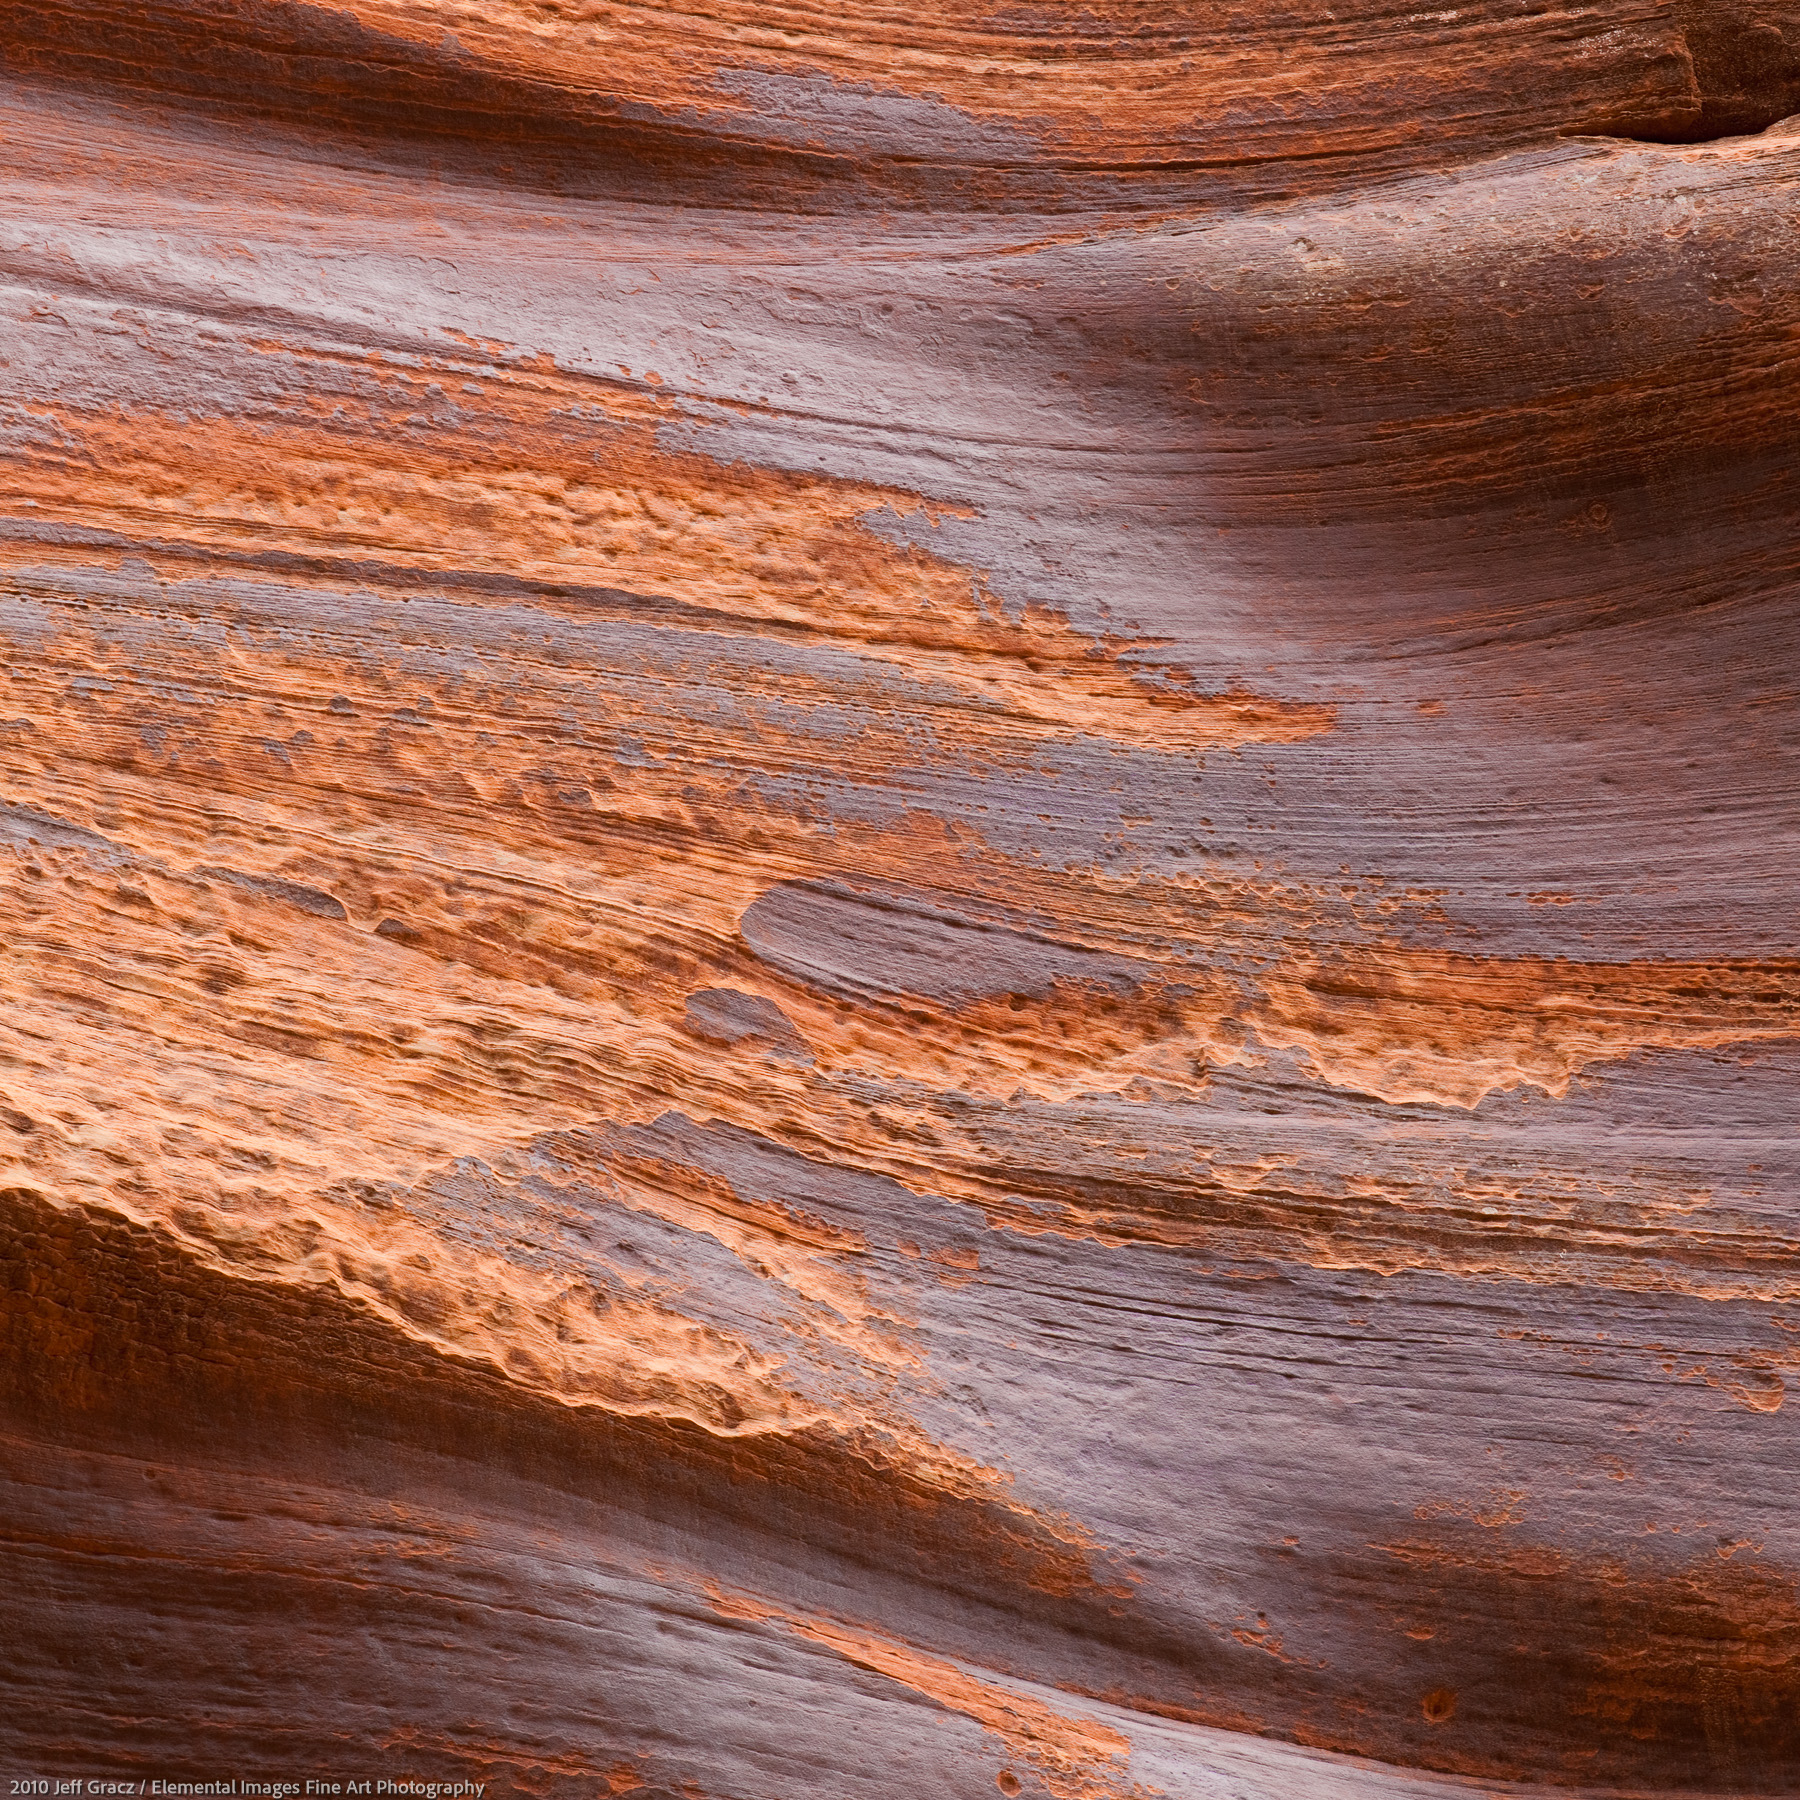 Canyon Wall VIII | Paria Canyon / Vermillion Cliffs Wilderness | UT | USA - © 2010 Jeff Gracz / Elemental Images Fine Art Photography - All Rights Reserved Worldwide